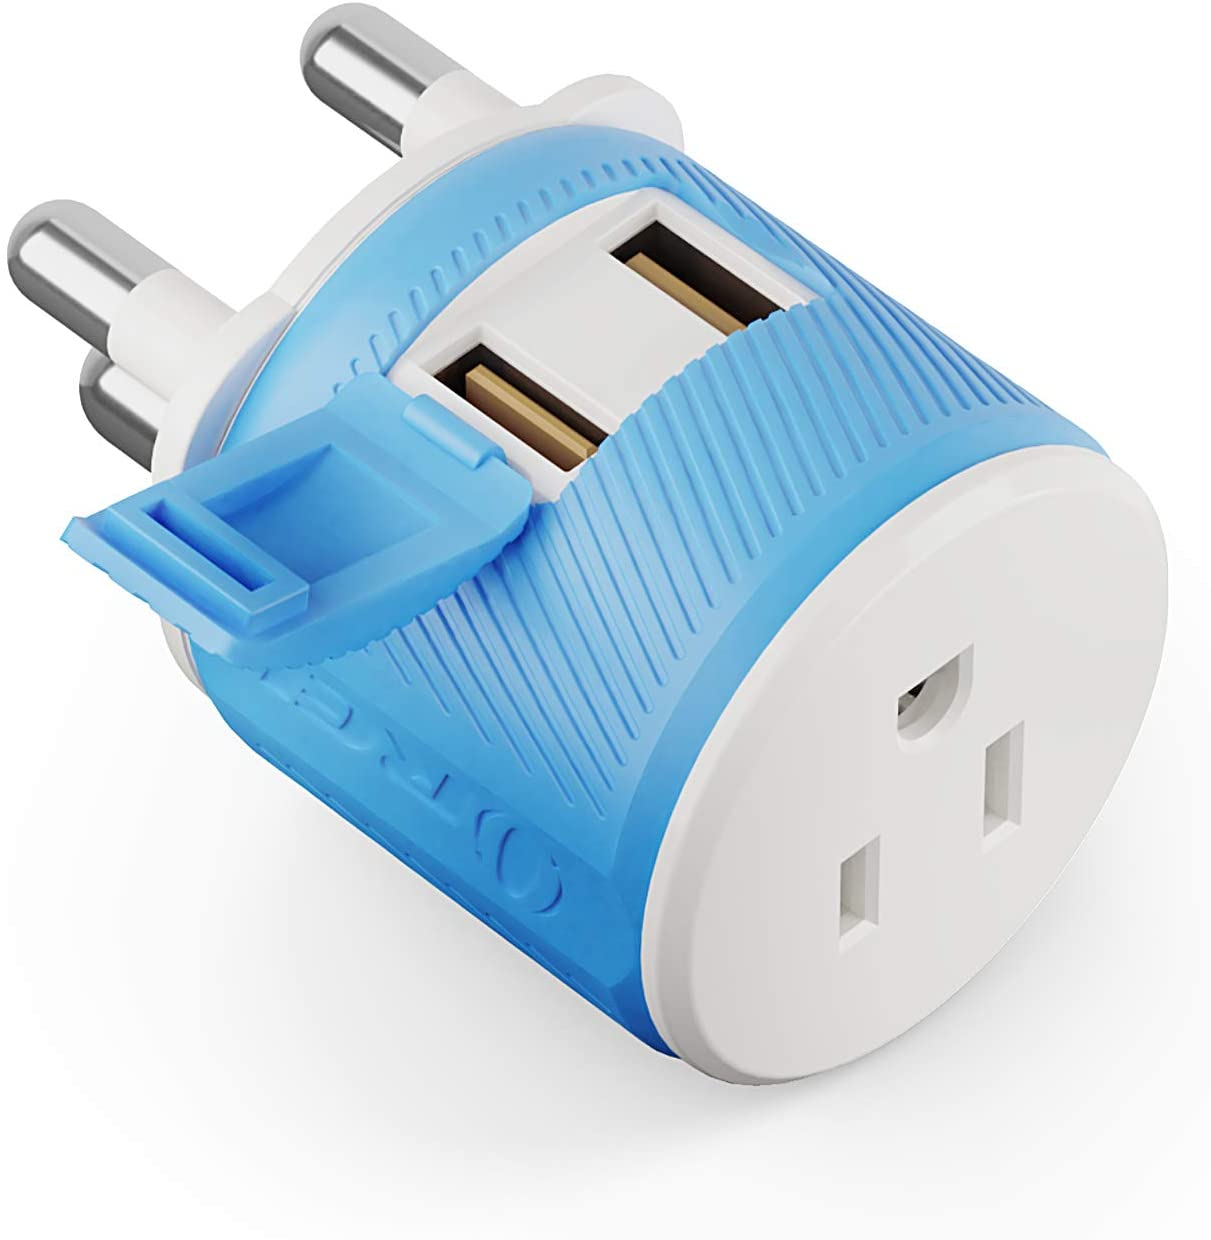 Orei South Africa, Botswana, Namibia Travel Plug Adapter with Dual USB - USA Input + Surge Protection - Type M (U2U-10L), Will work with Cell Phones, Camera, Laptop, Tablets, iPad, iPhone